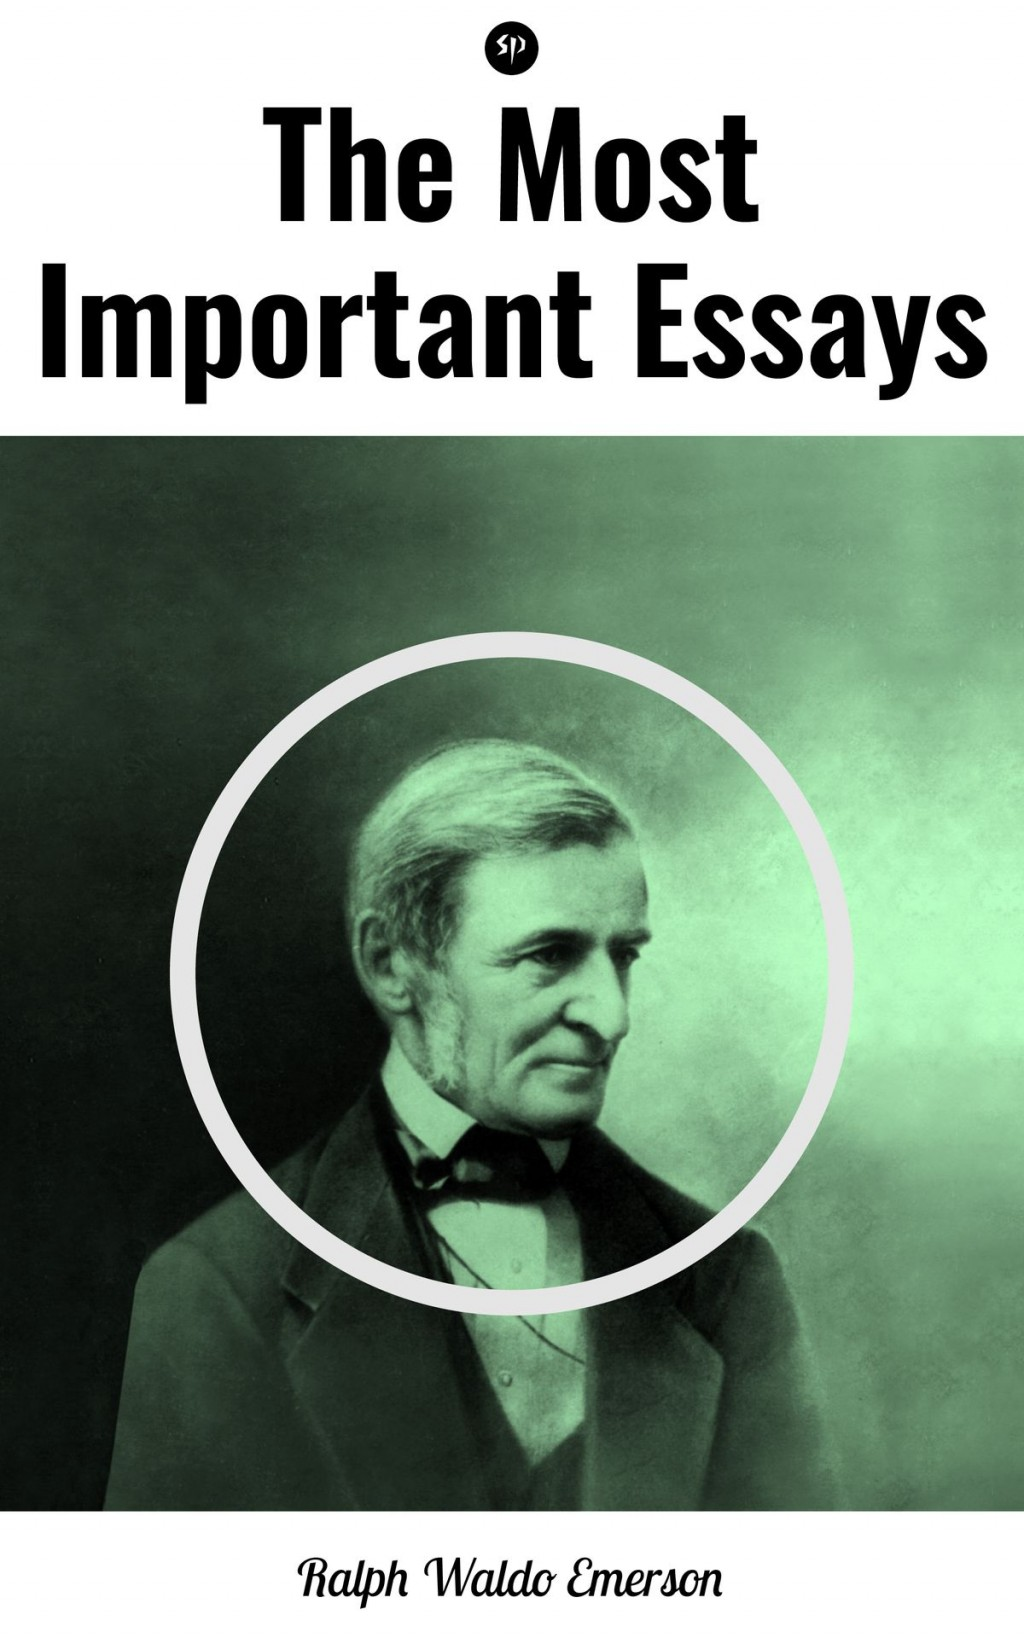 019 Essay Example Ralph Waldo Emerson Essays The Most Important Unusual Nature And Selected By Pdf Download First Second Series Large